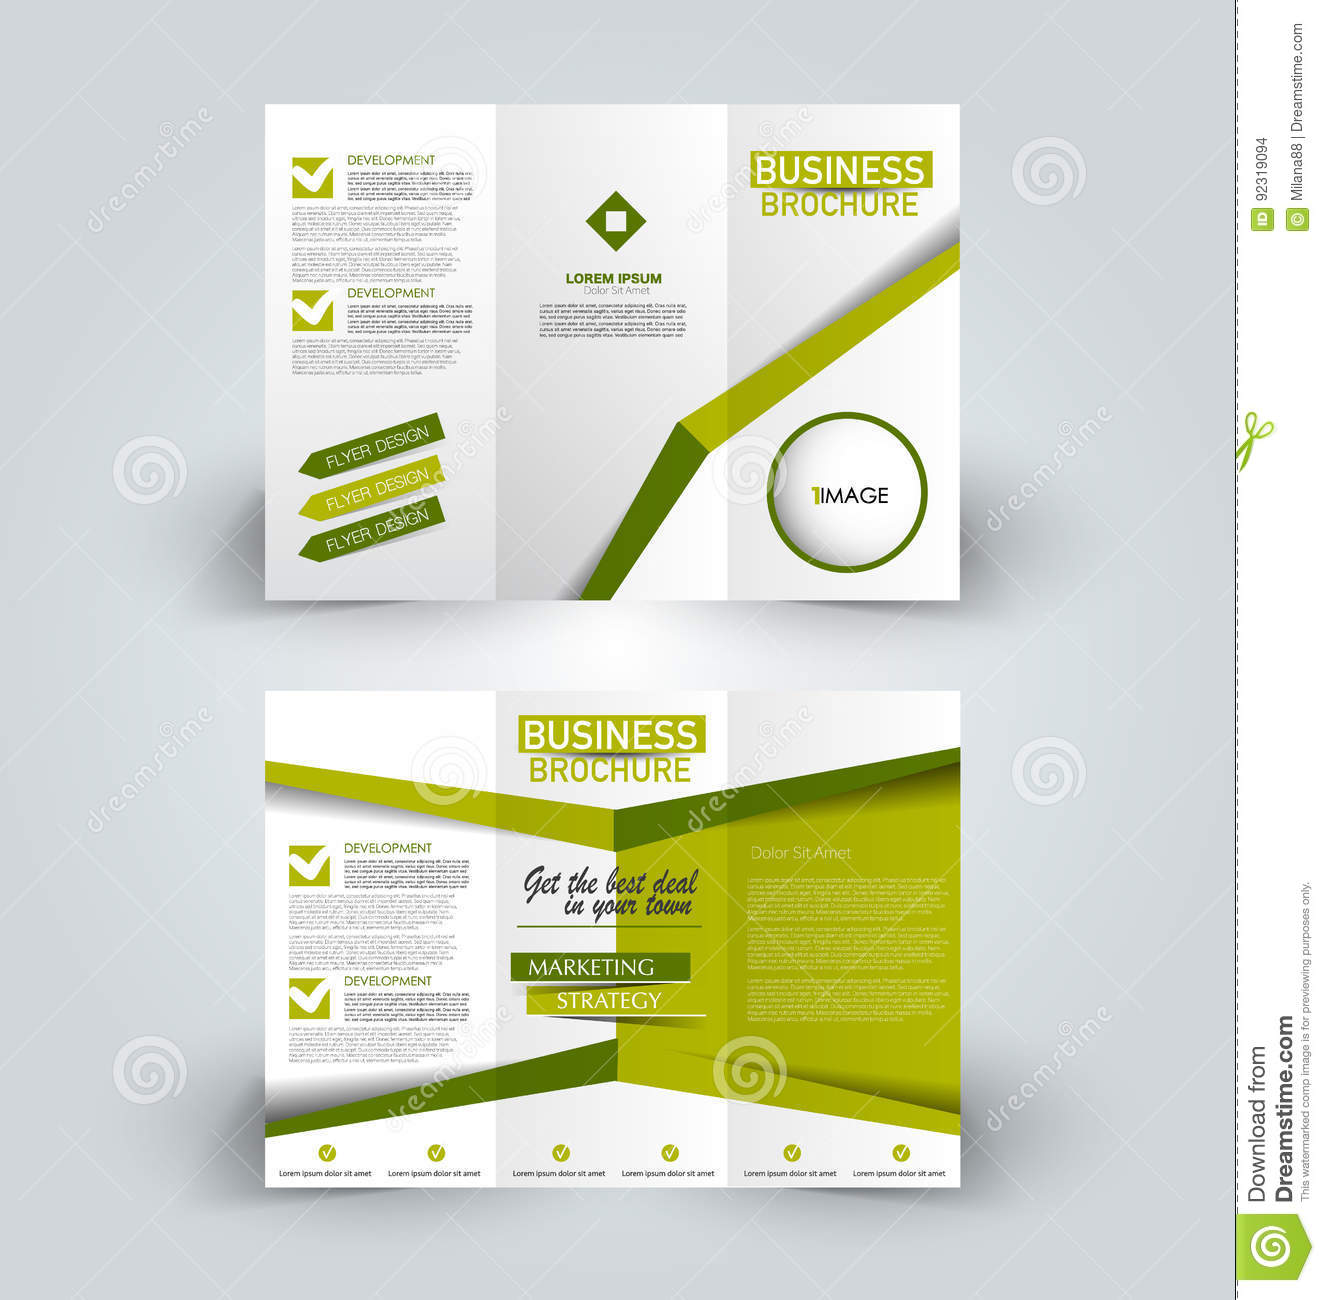 Brochure design template for business education advertisement. Trifold booklet